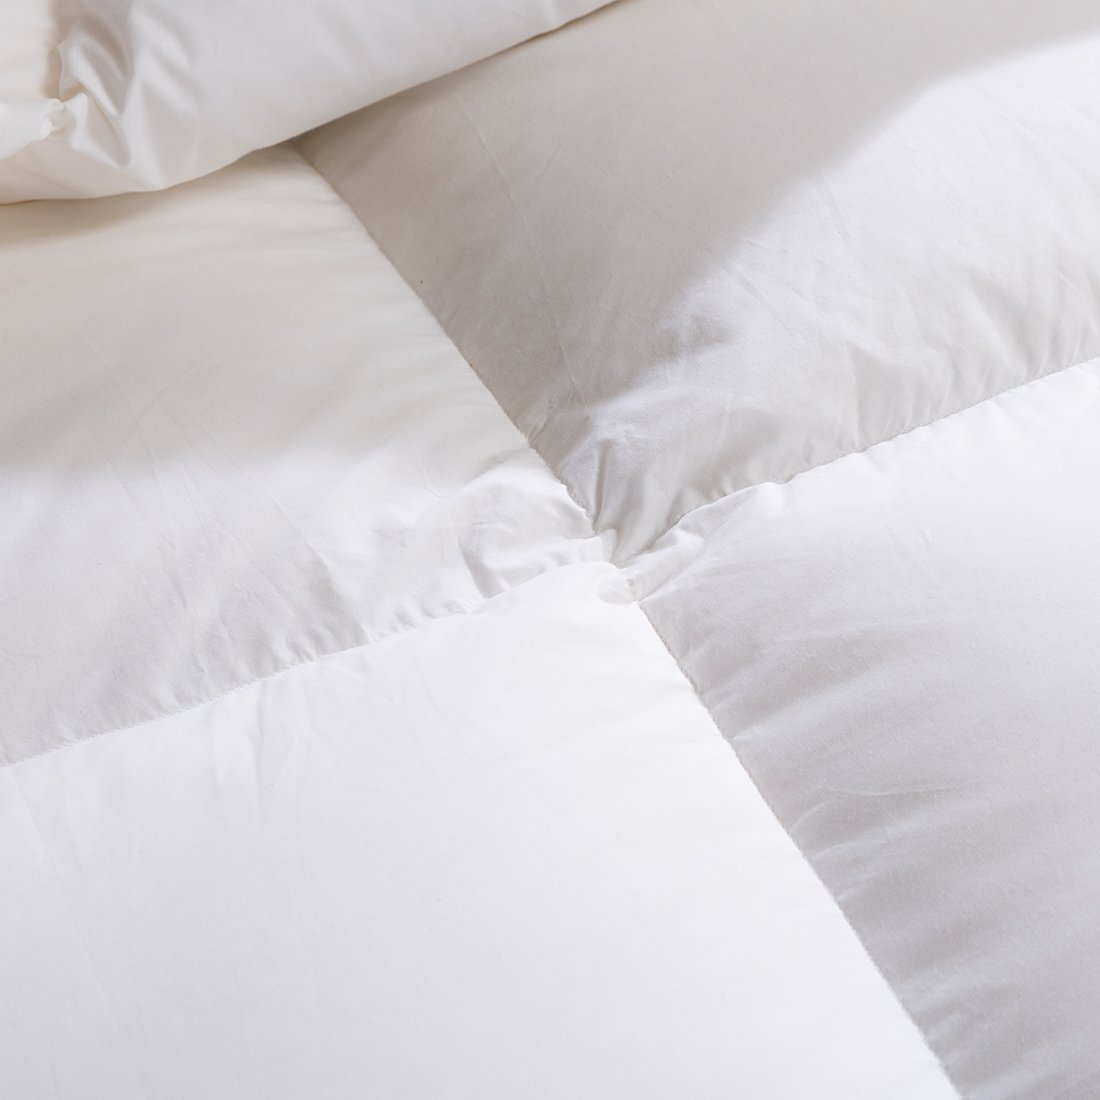 SHEONE All Seasons Lightweight White Goose Down Comforter-650 Fill Power-100% Cotton Shell Down Proof-Solid White Hypo-allergenic Duvet Insert With Tabs (King) by SHEONE (Image #4)